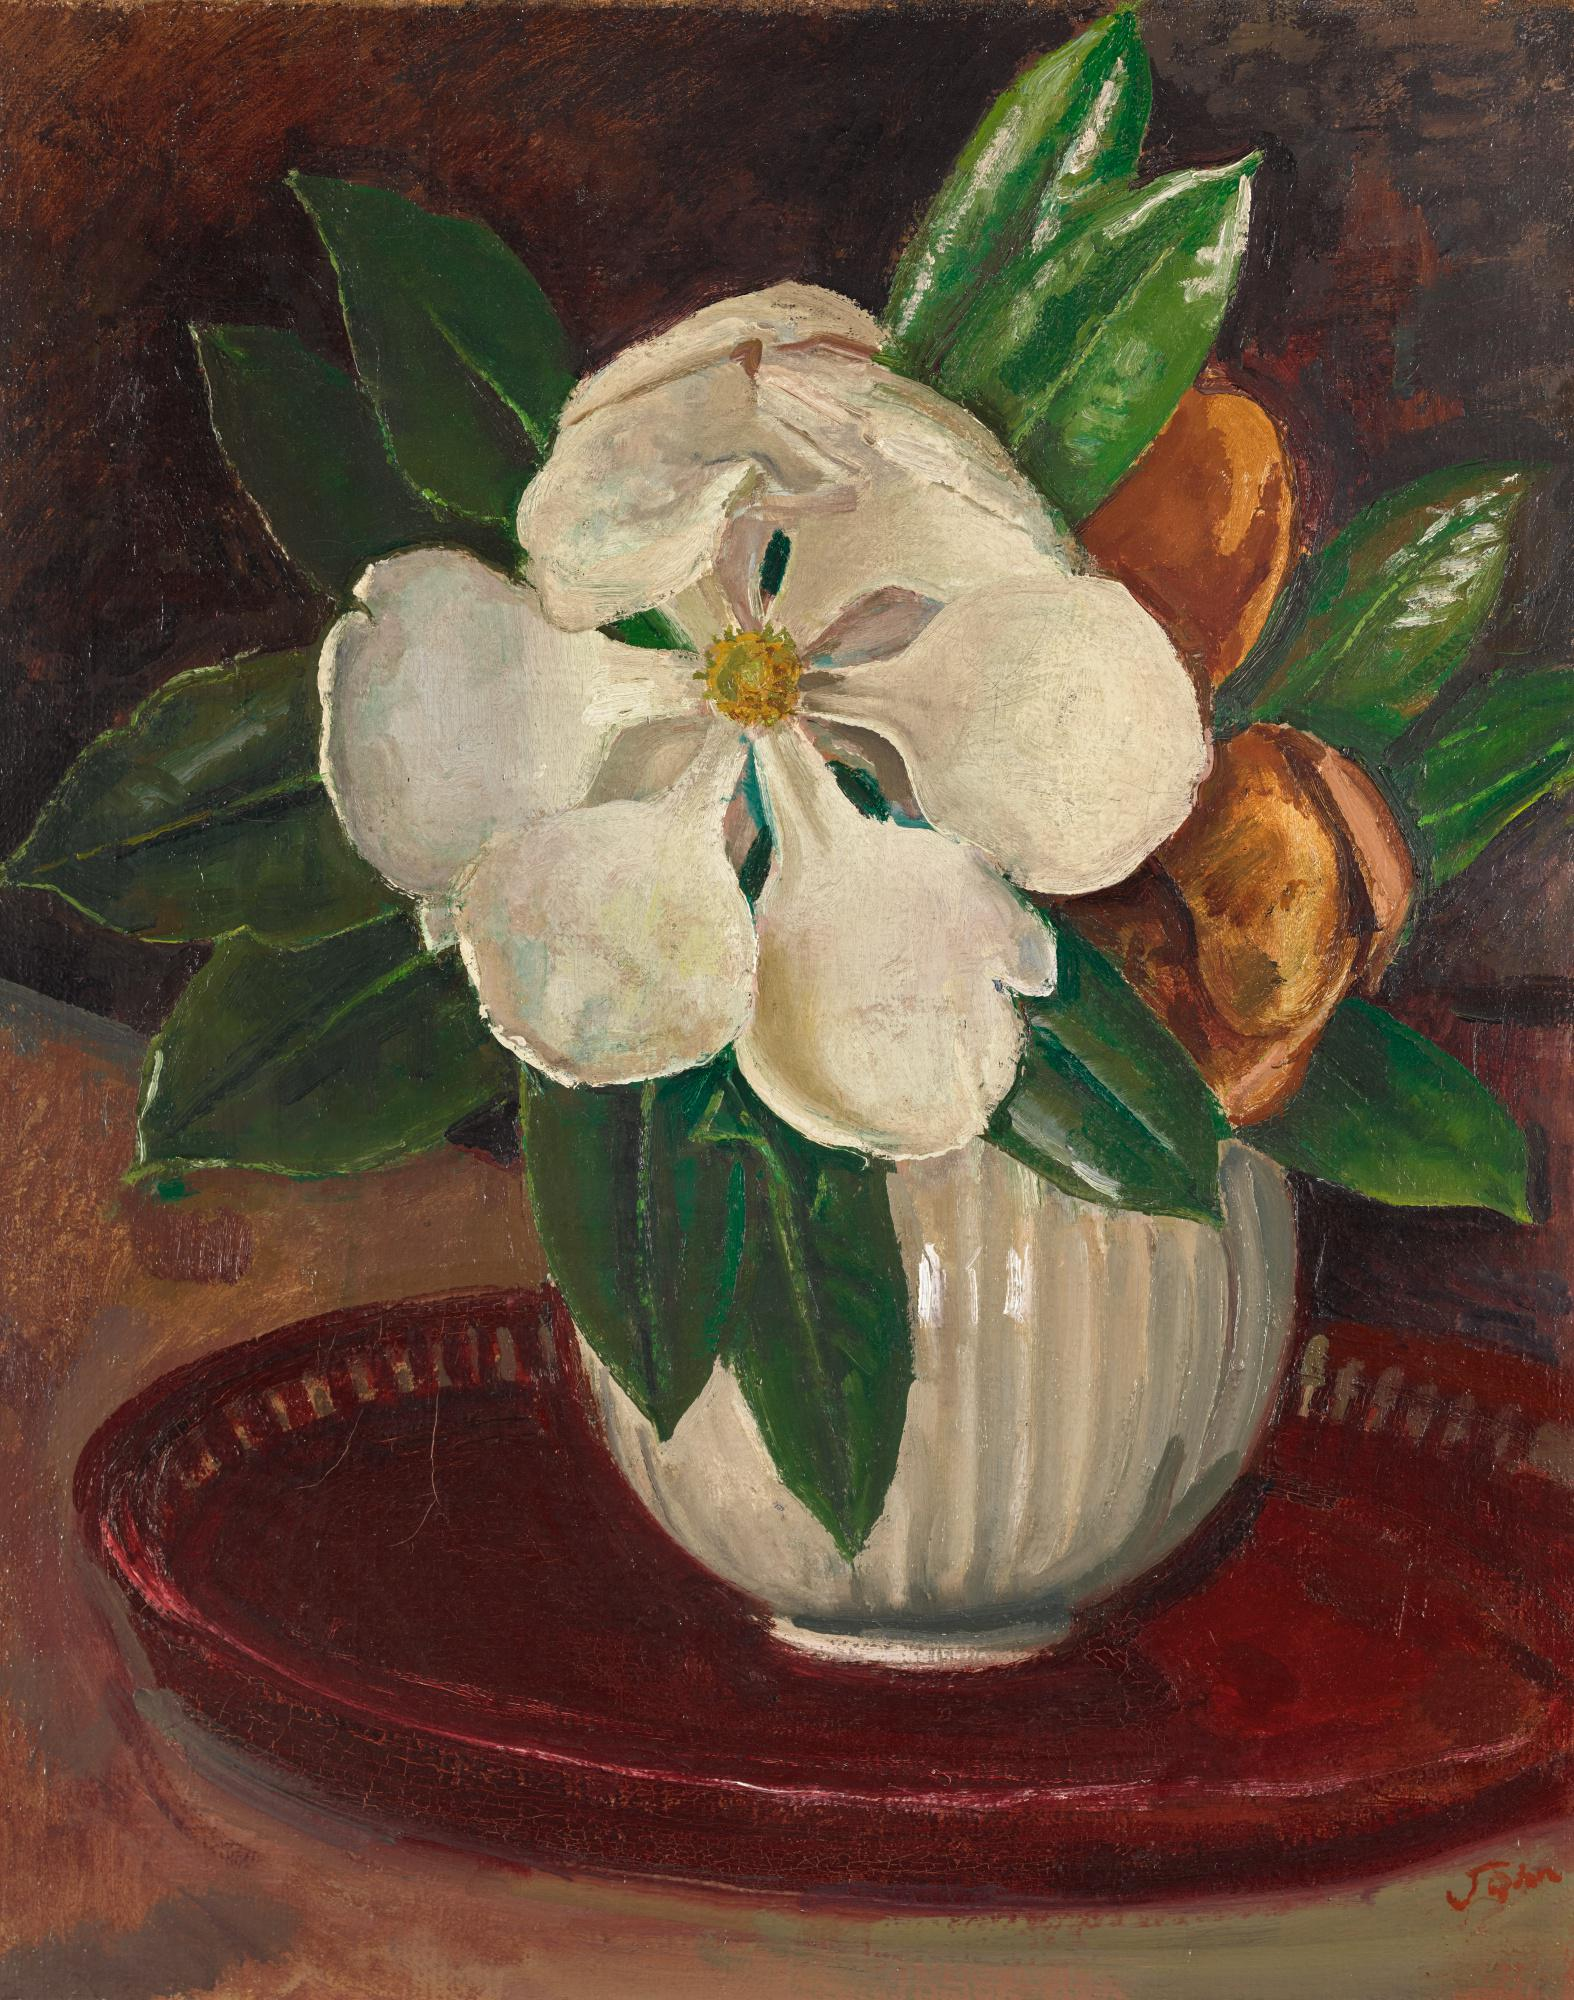 AUGUSTUS JOHN, R.A.   MAGNOLIA WITH LEAVES IN A BOWL